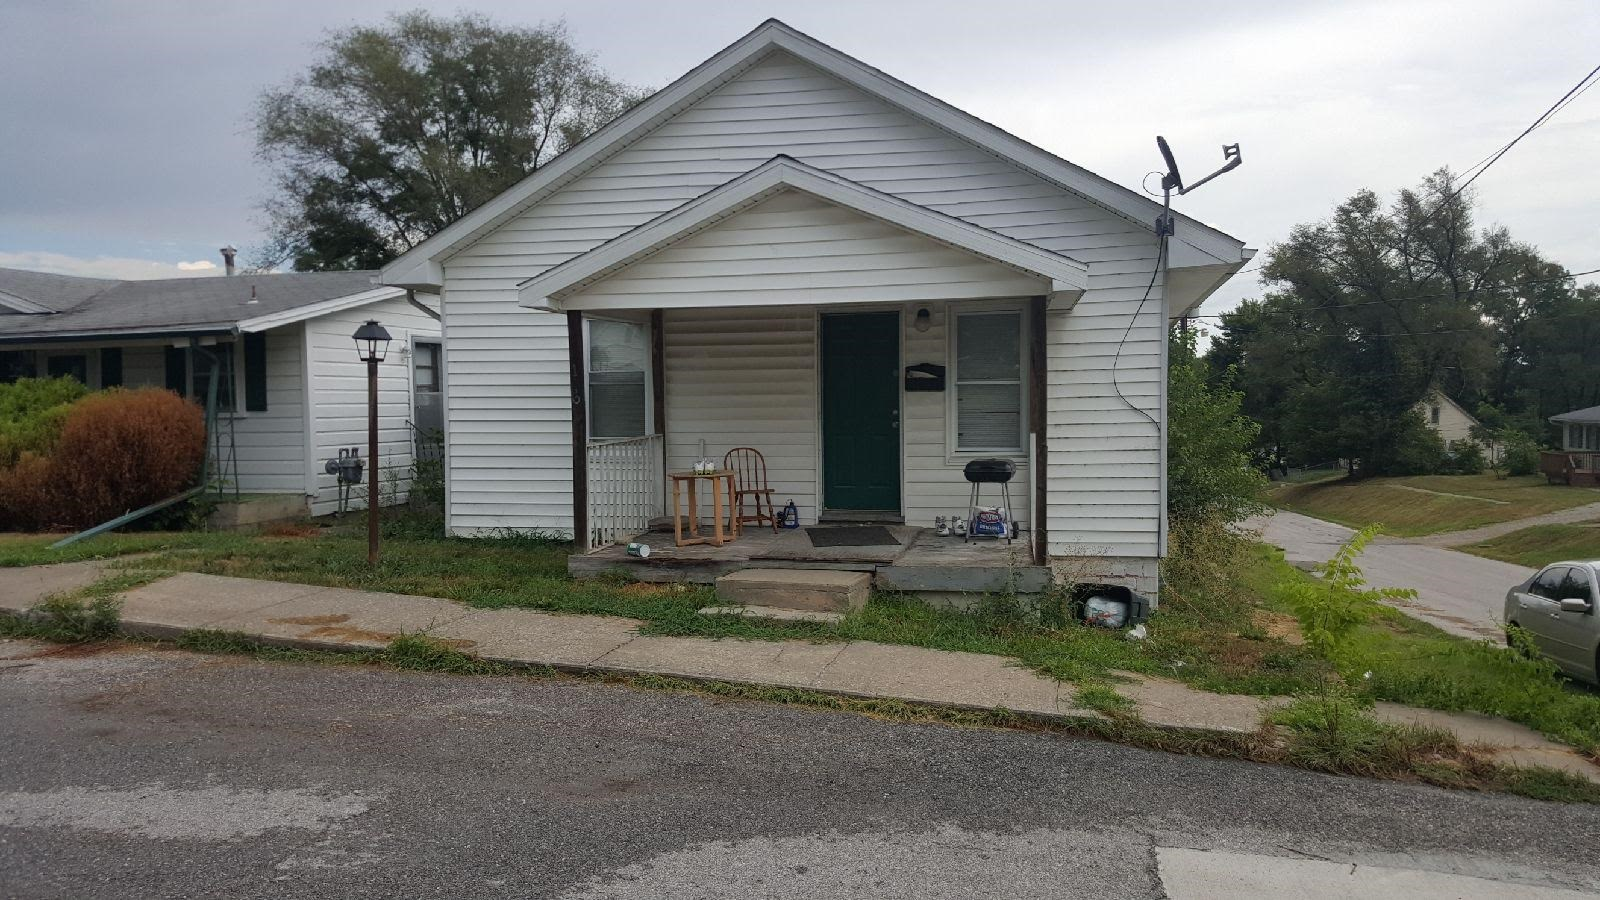 Home in Town For Sale, Rental or Starter Home in Fayette, MO